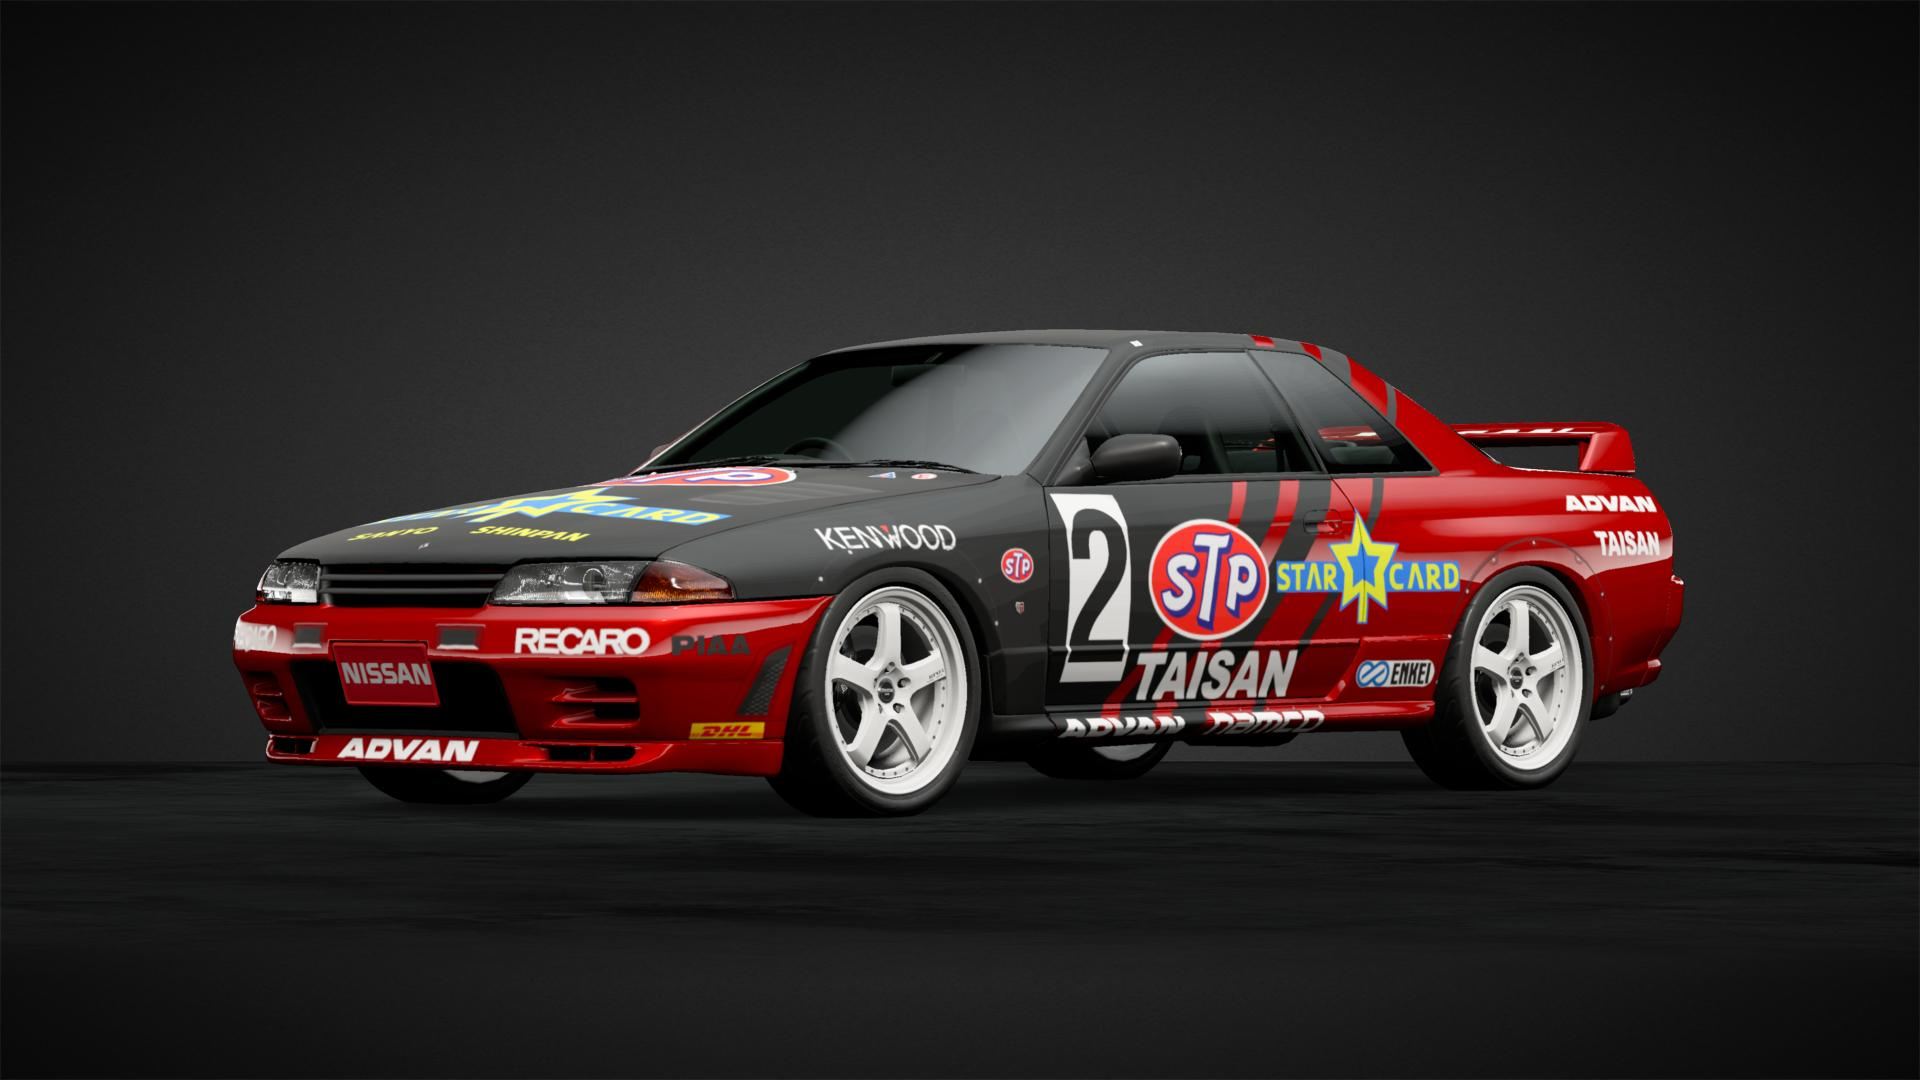 Taisan GTR N1 - Car Livery by Dirt_Beezle | Community | Gran